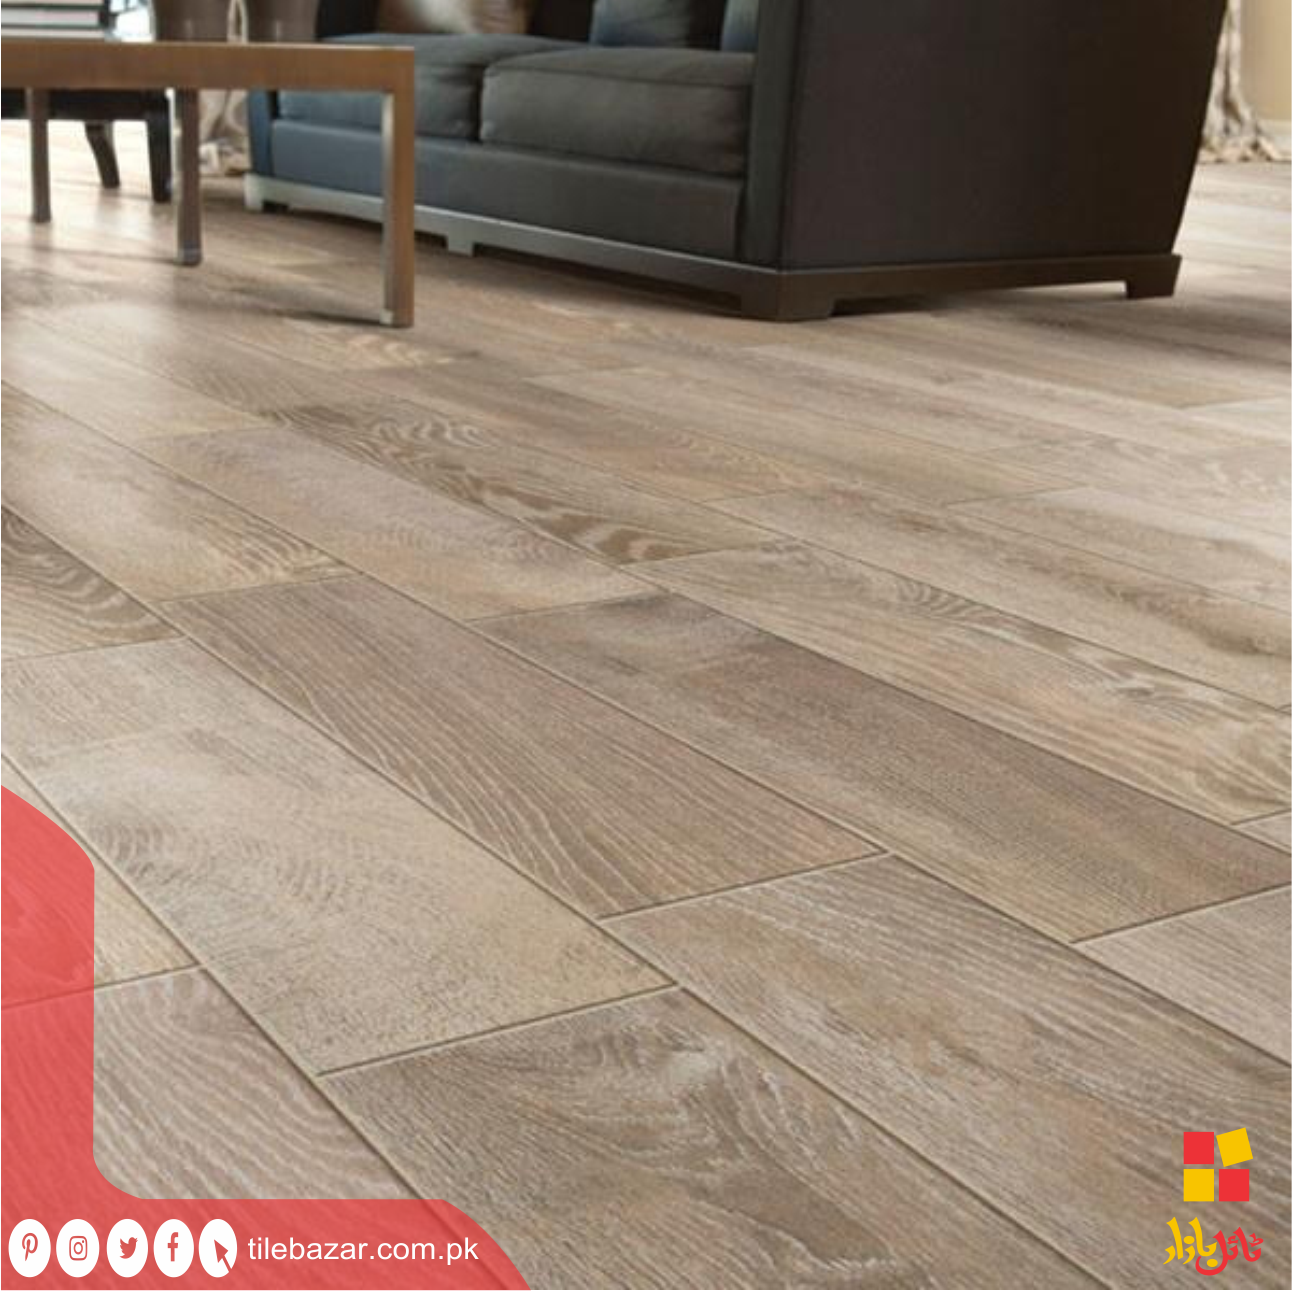 GIVE CLASSY LOOK TO YOUR FLOORS BY USING THESE ELEGANT